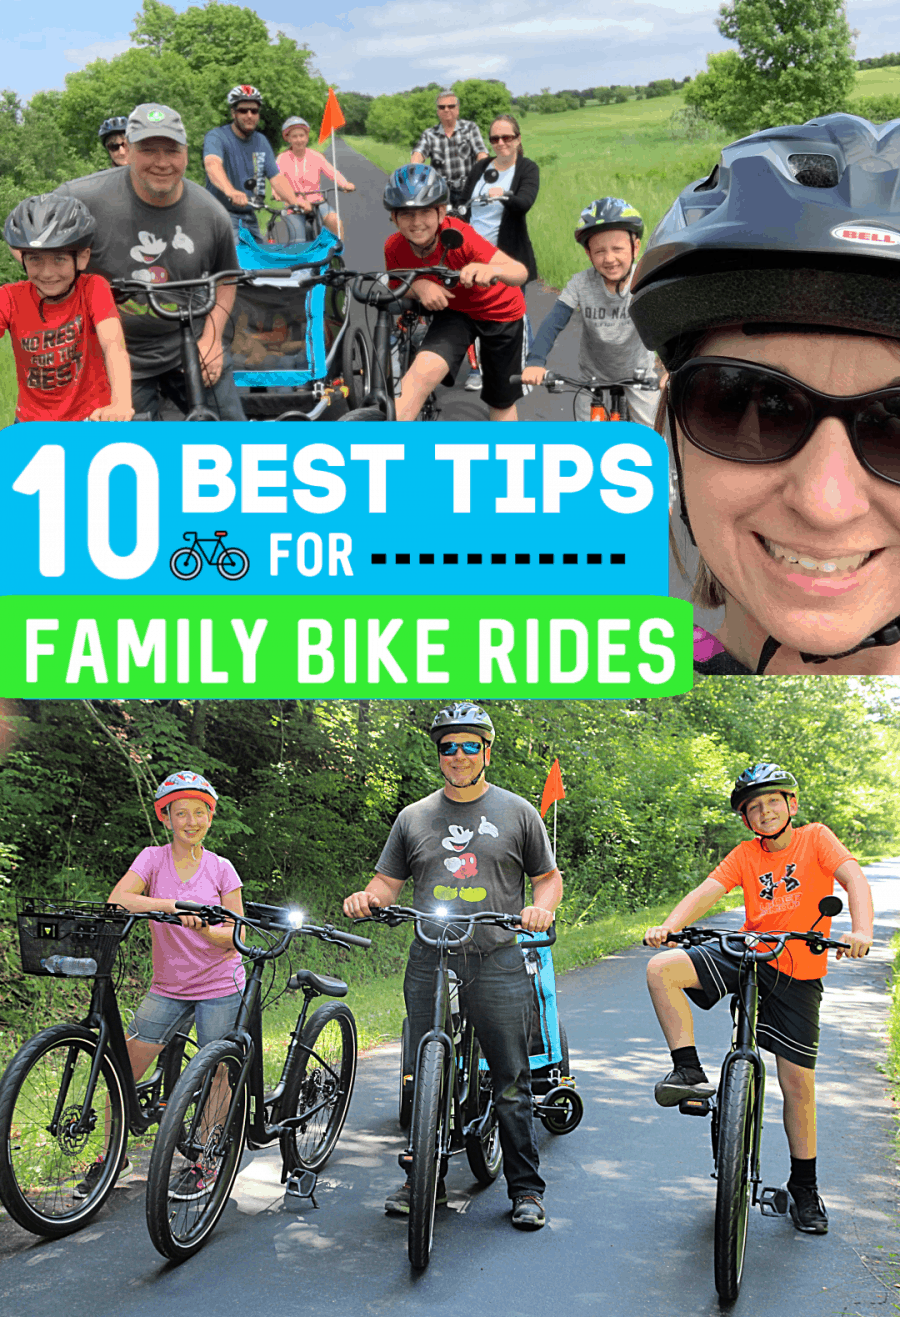 10 Best Tips for Family Bike Rides